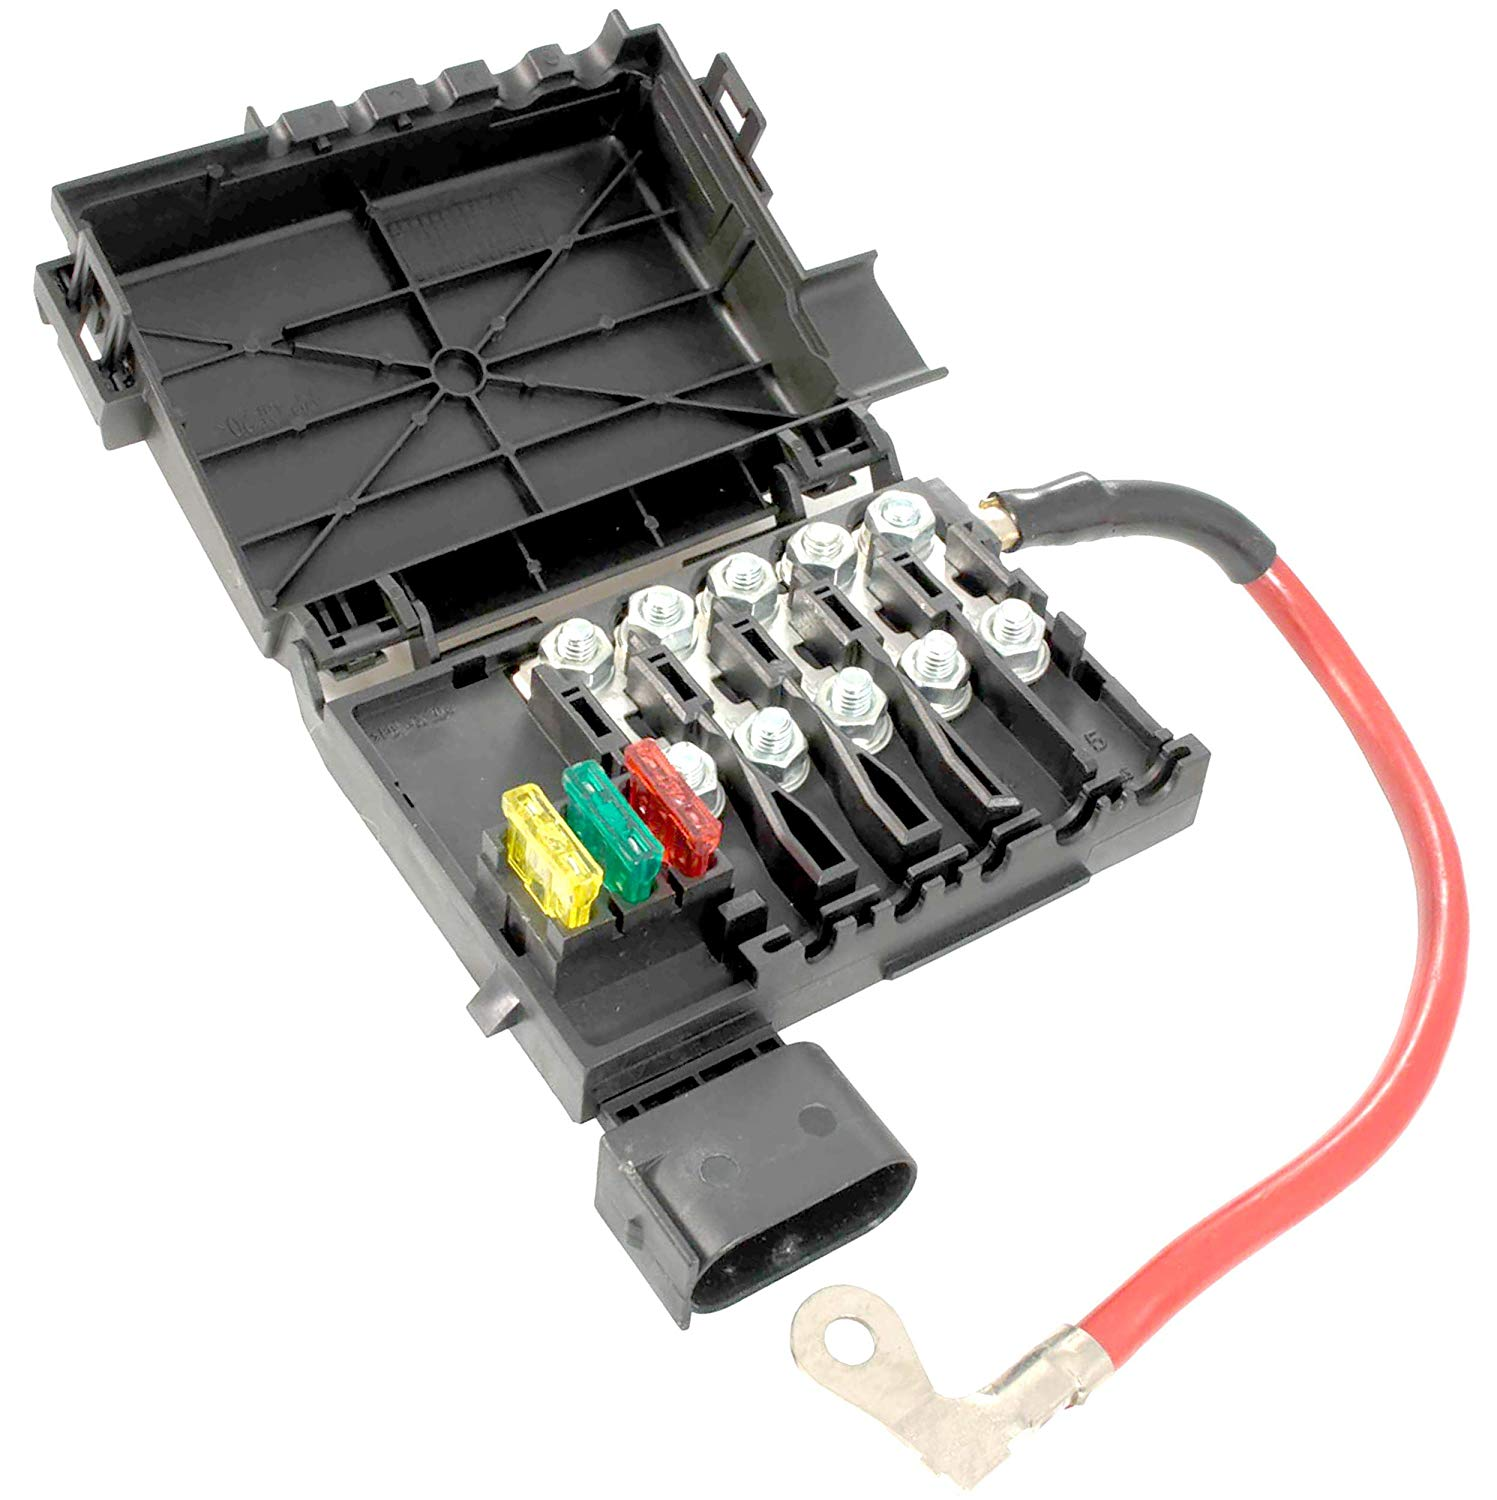 Audi Tt Fuse Box Melted - Wiring Diagram All crop-approve -  crop-approve.huevoprint.it   Audi Tt Fuse Box Melted      Huevoprint